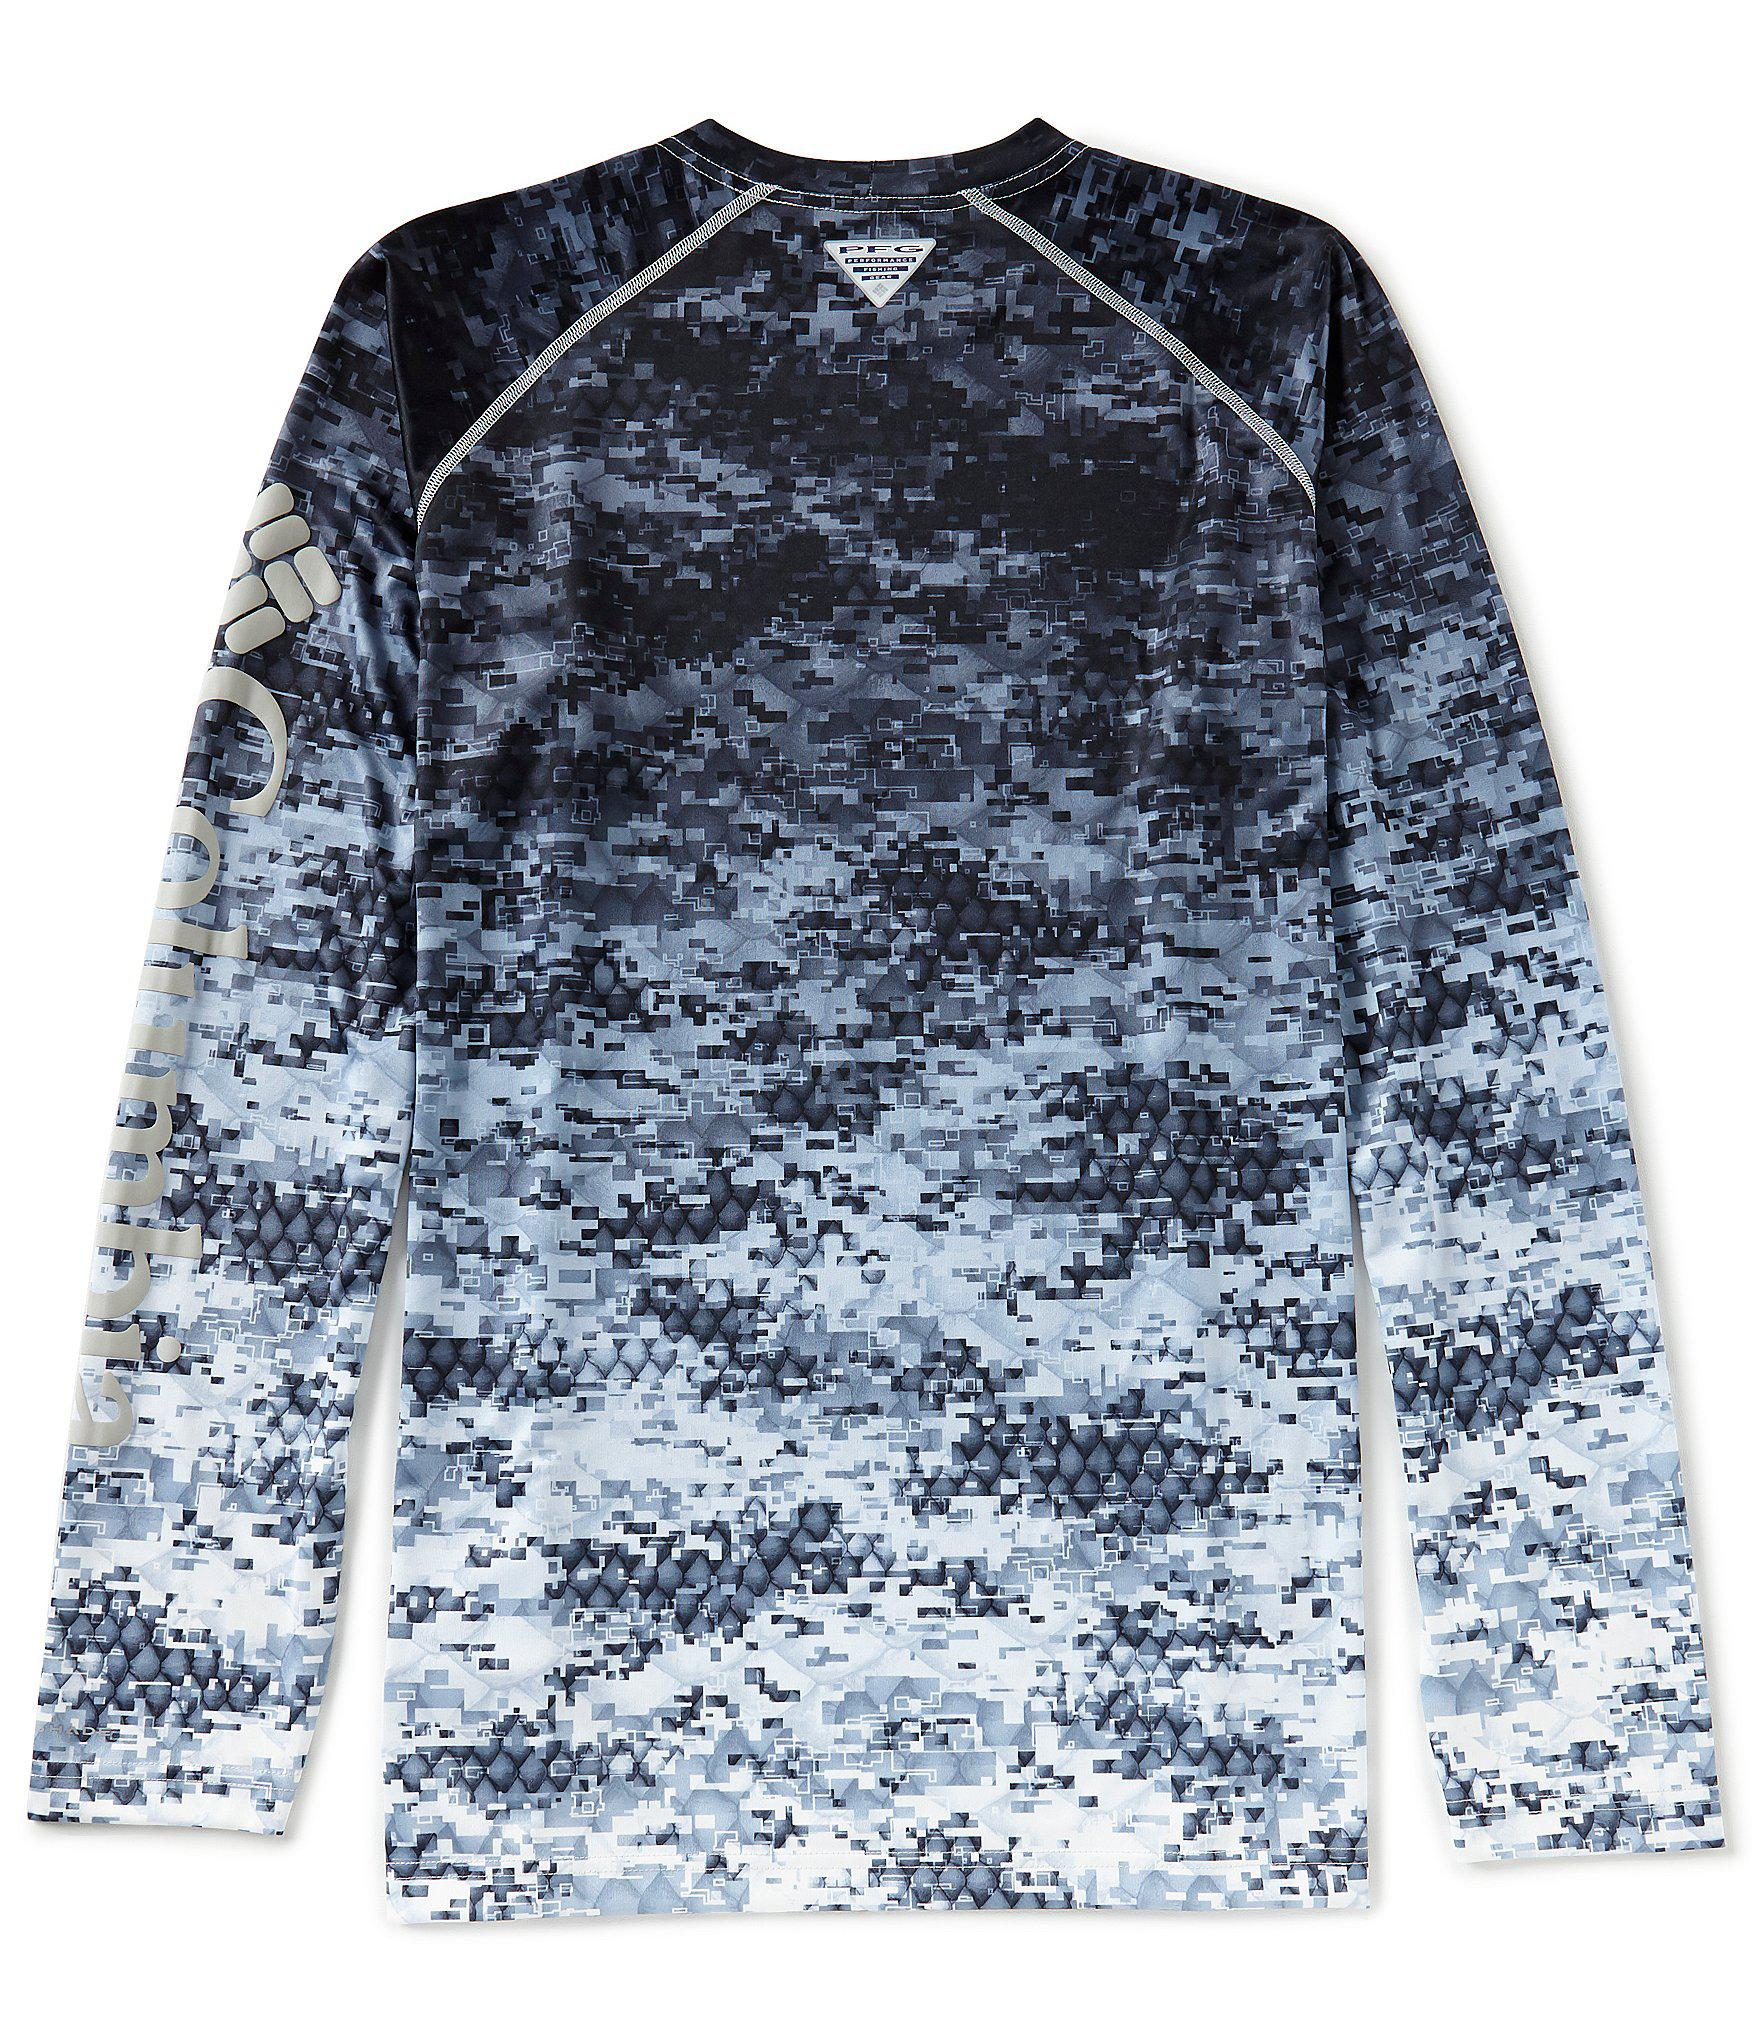 86c49b19540 Columbia Pfg Terminal Tackle Camo Fade Long-sleeve Tee in Blue for ...